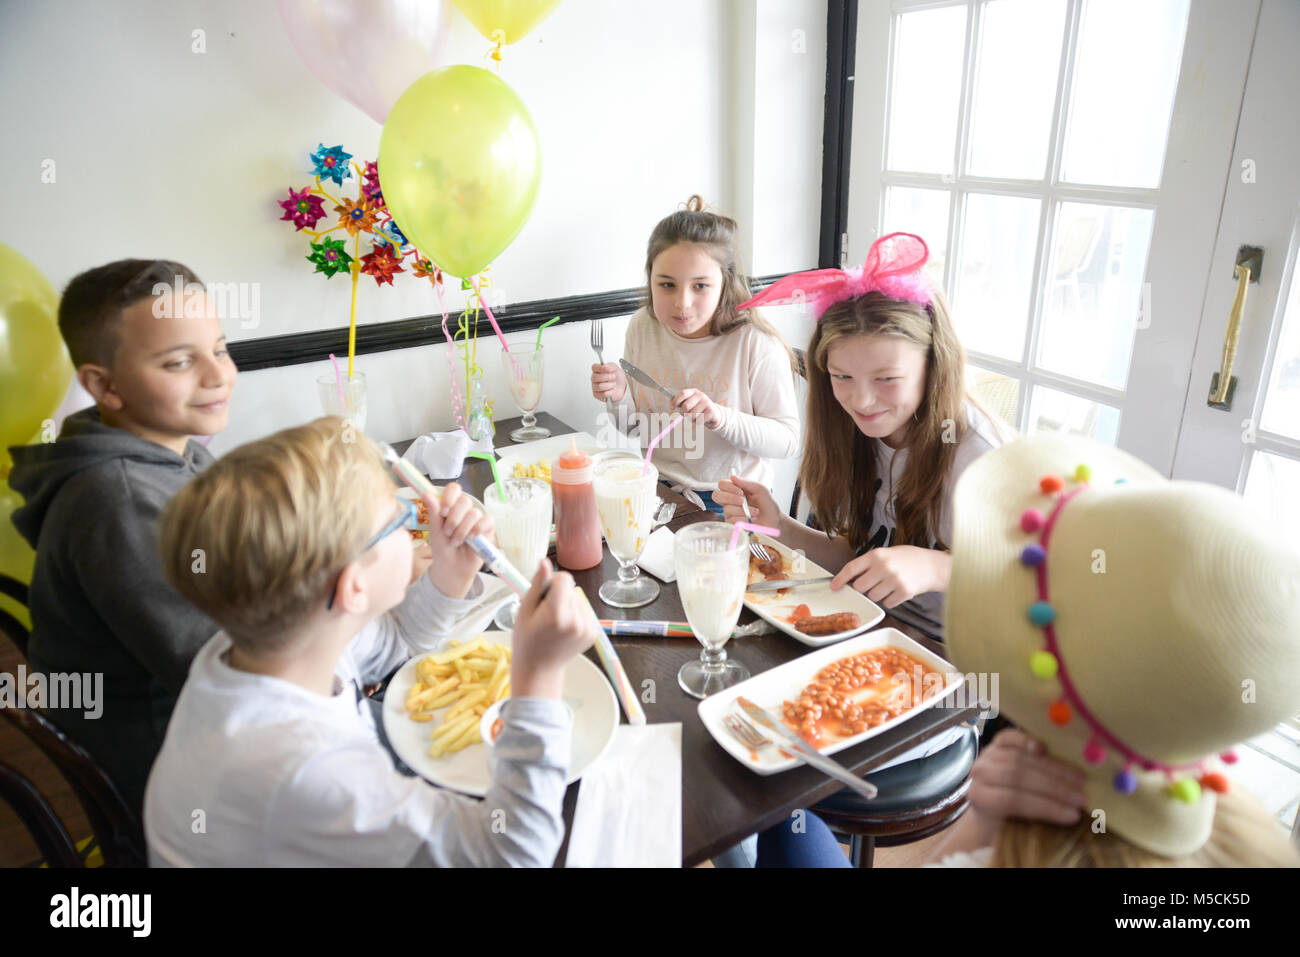 Five young children are sitting at a party table eating fried food and drinking milkshakes- there are balloons and - Stock Image